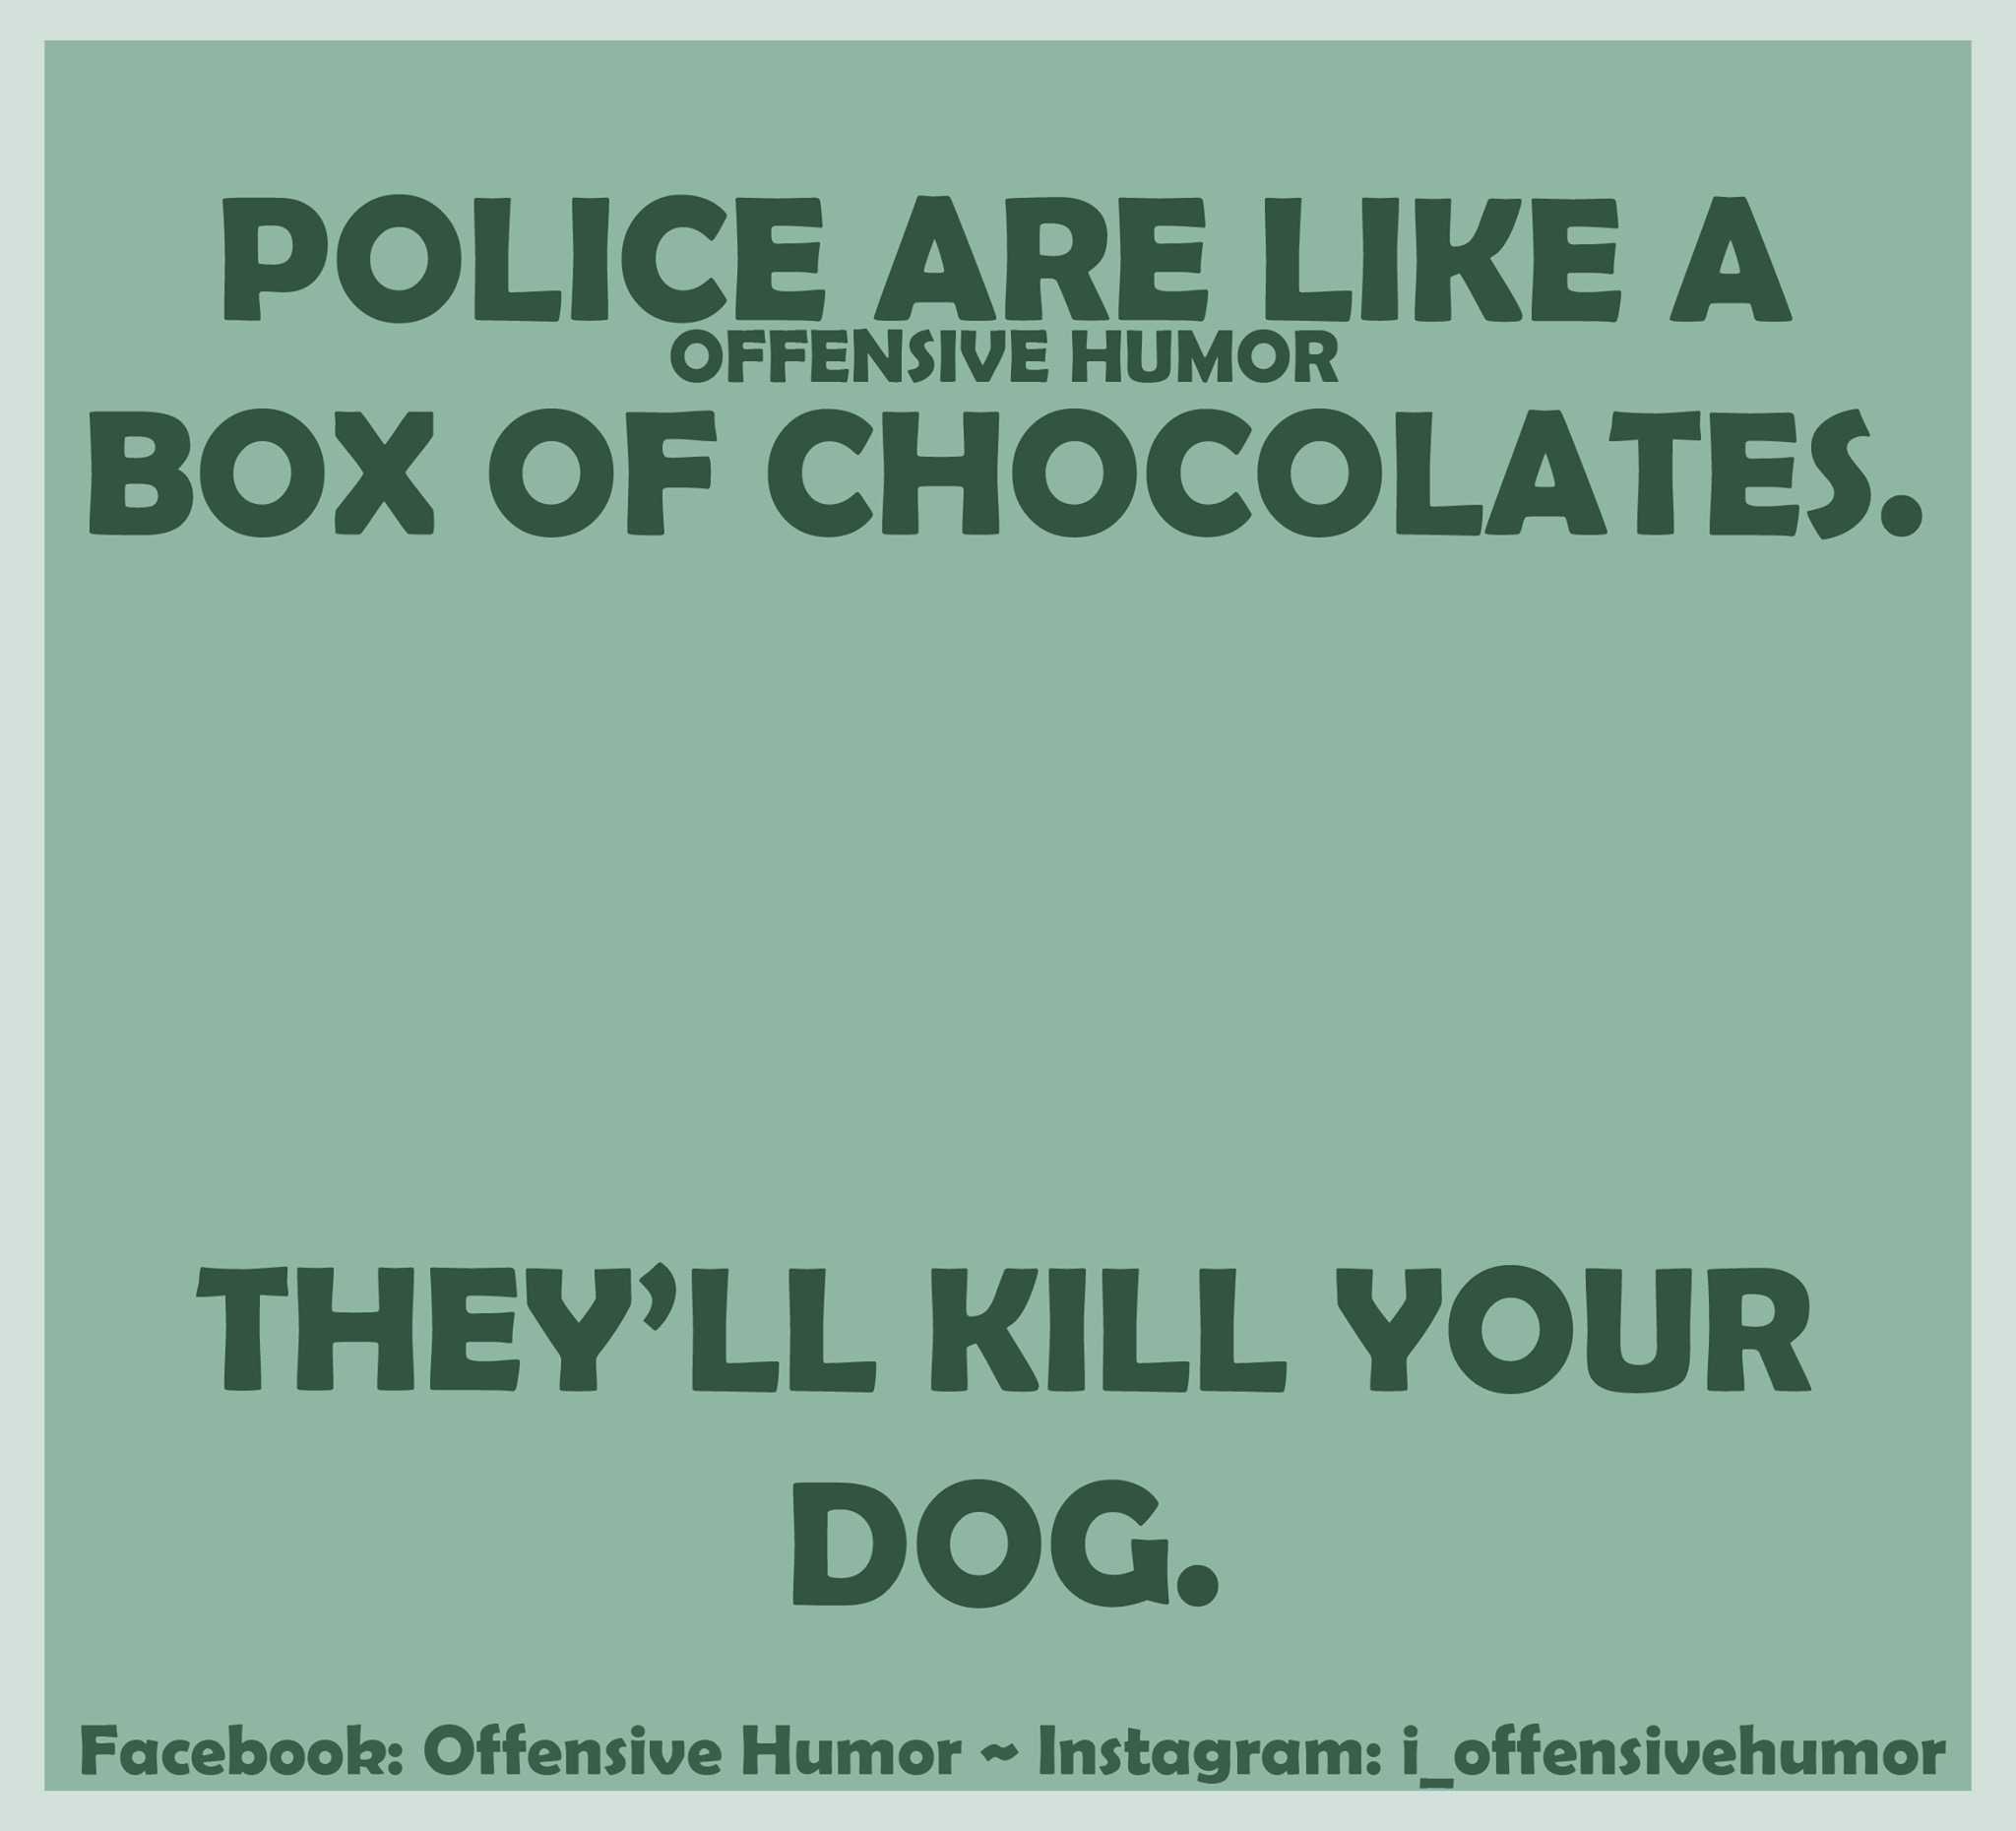 police are like a box of chocolates, they'll kill your dog